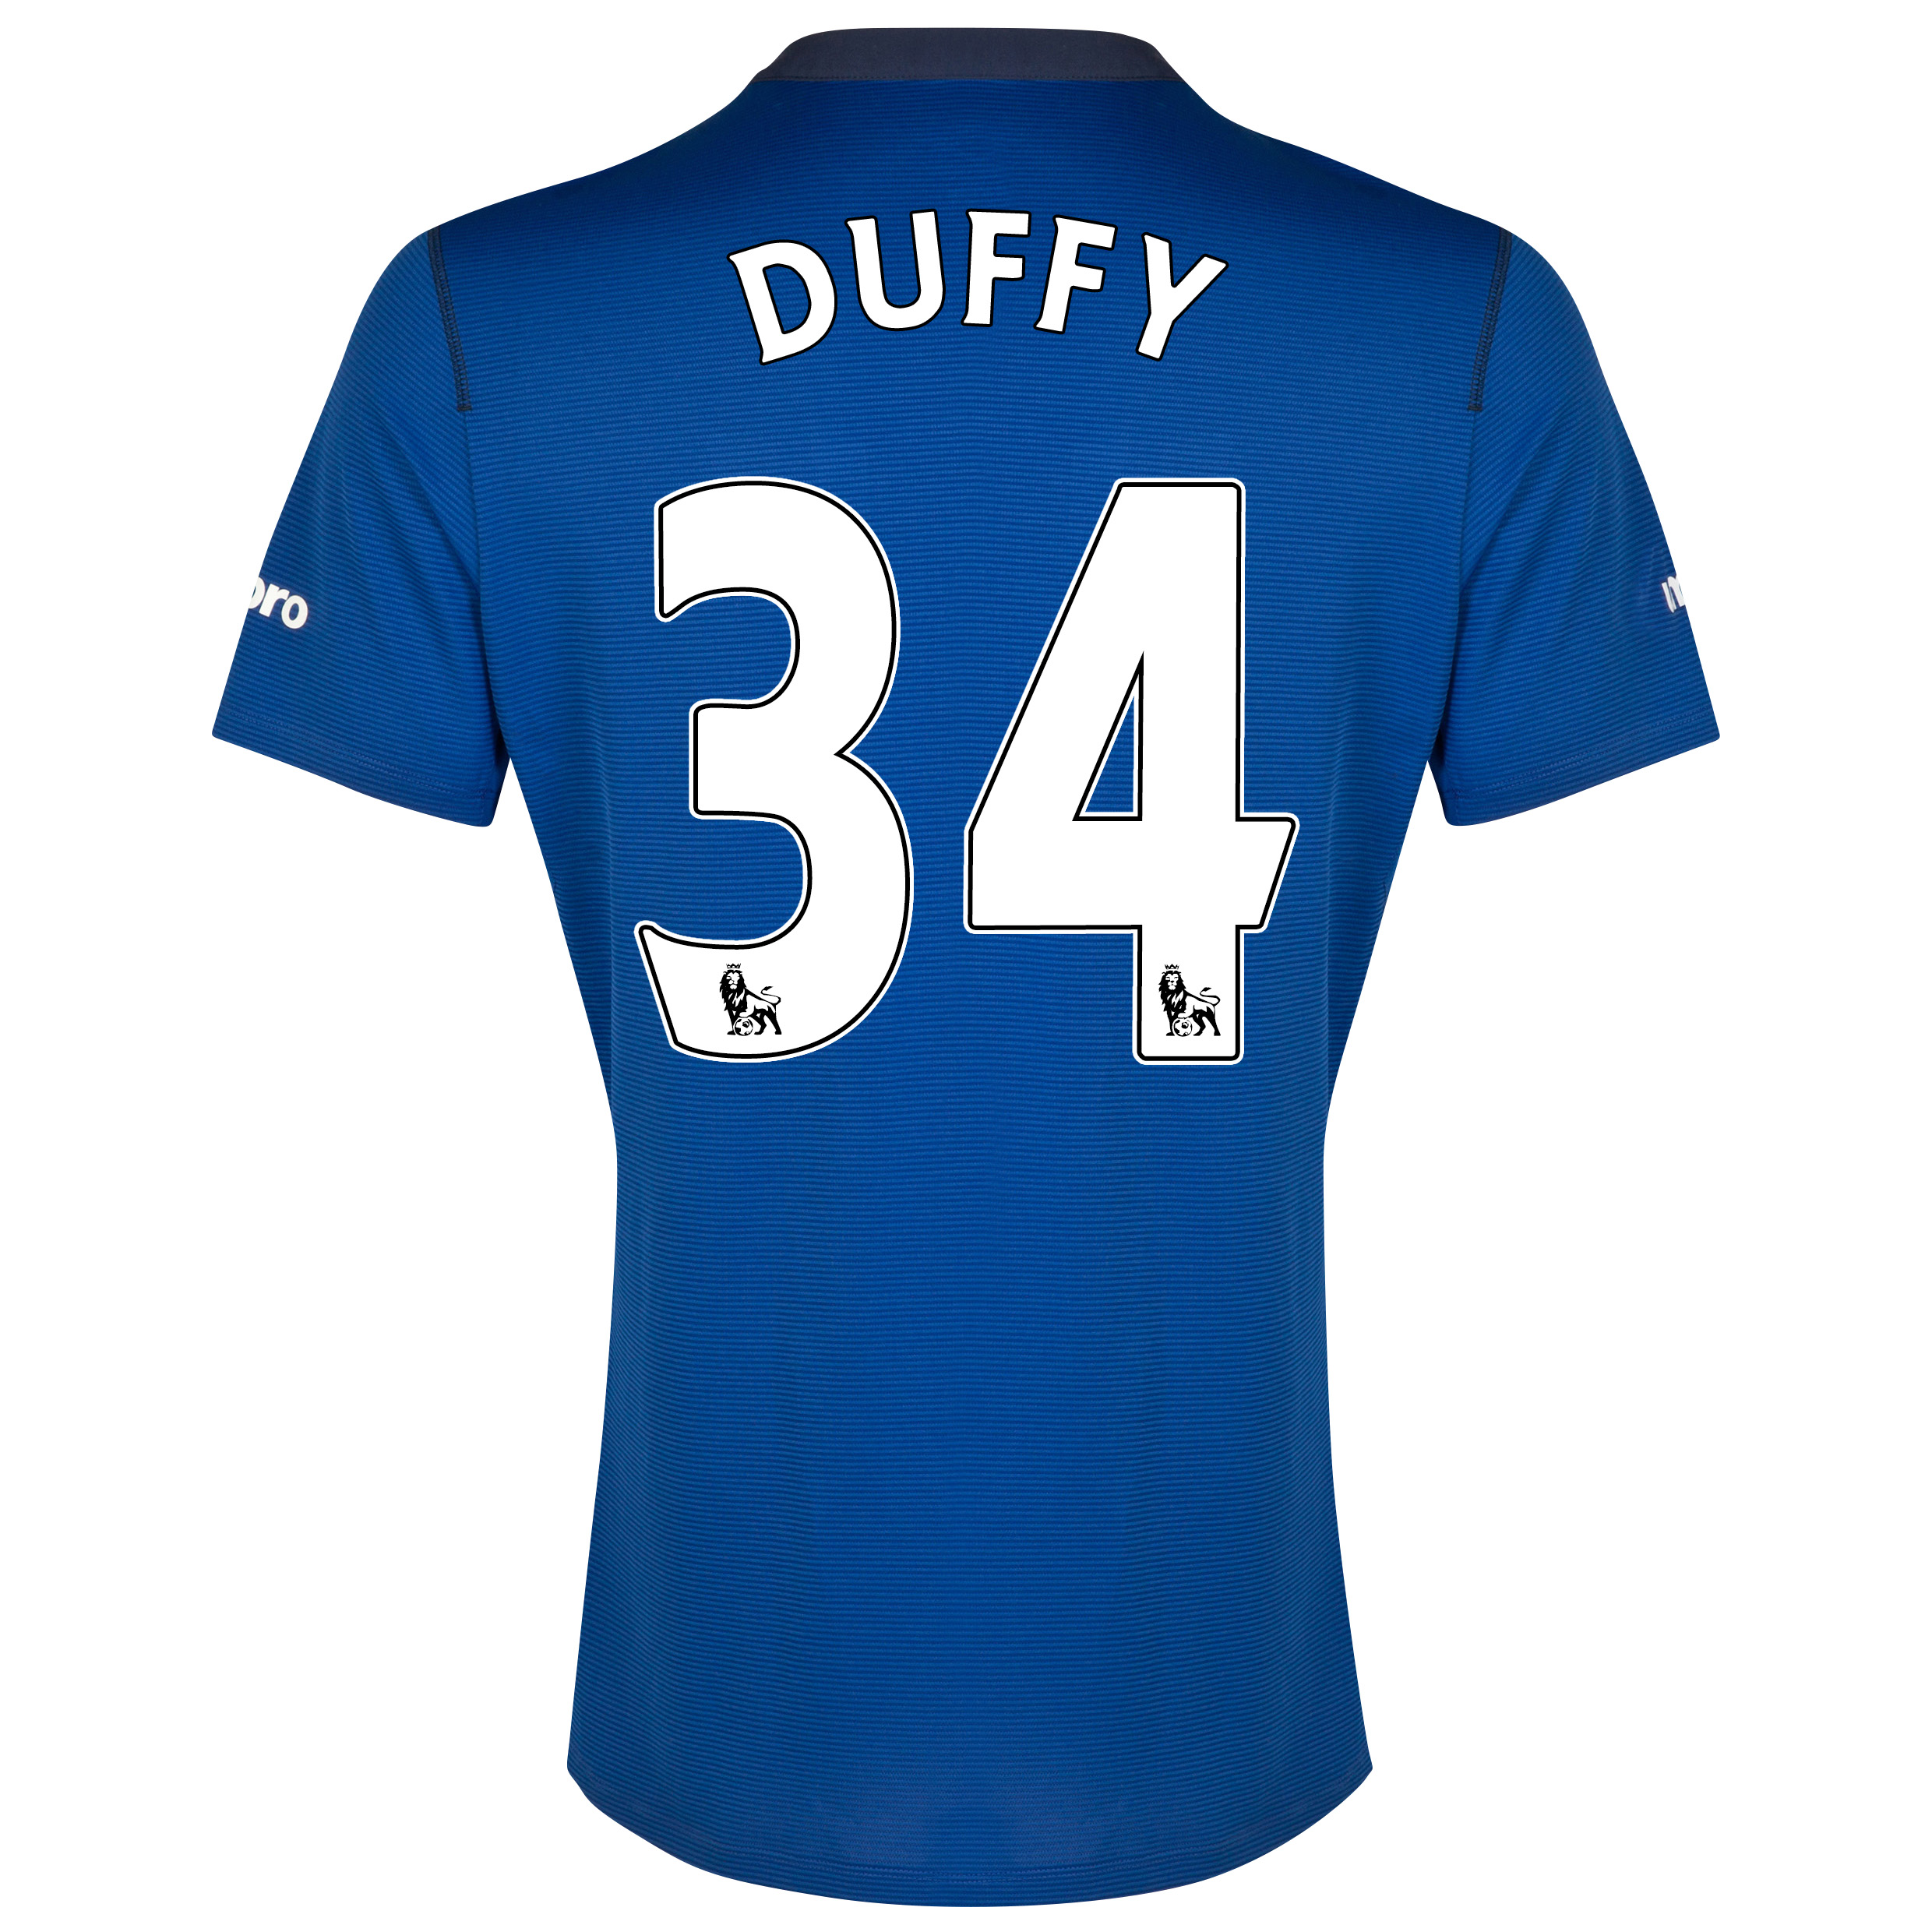 Everton SS Home Shirt 2014/15 with Duffy 34 printing